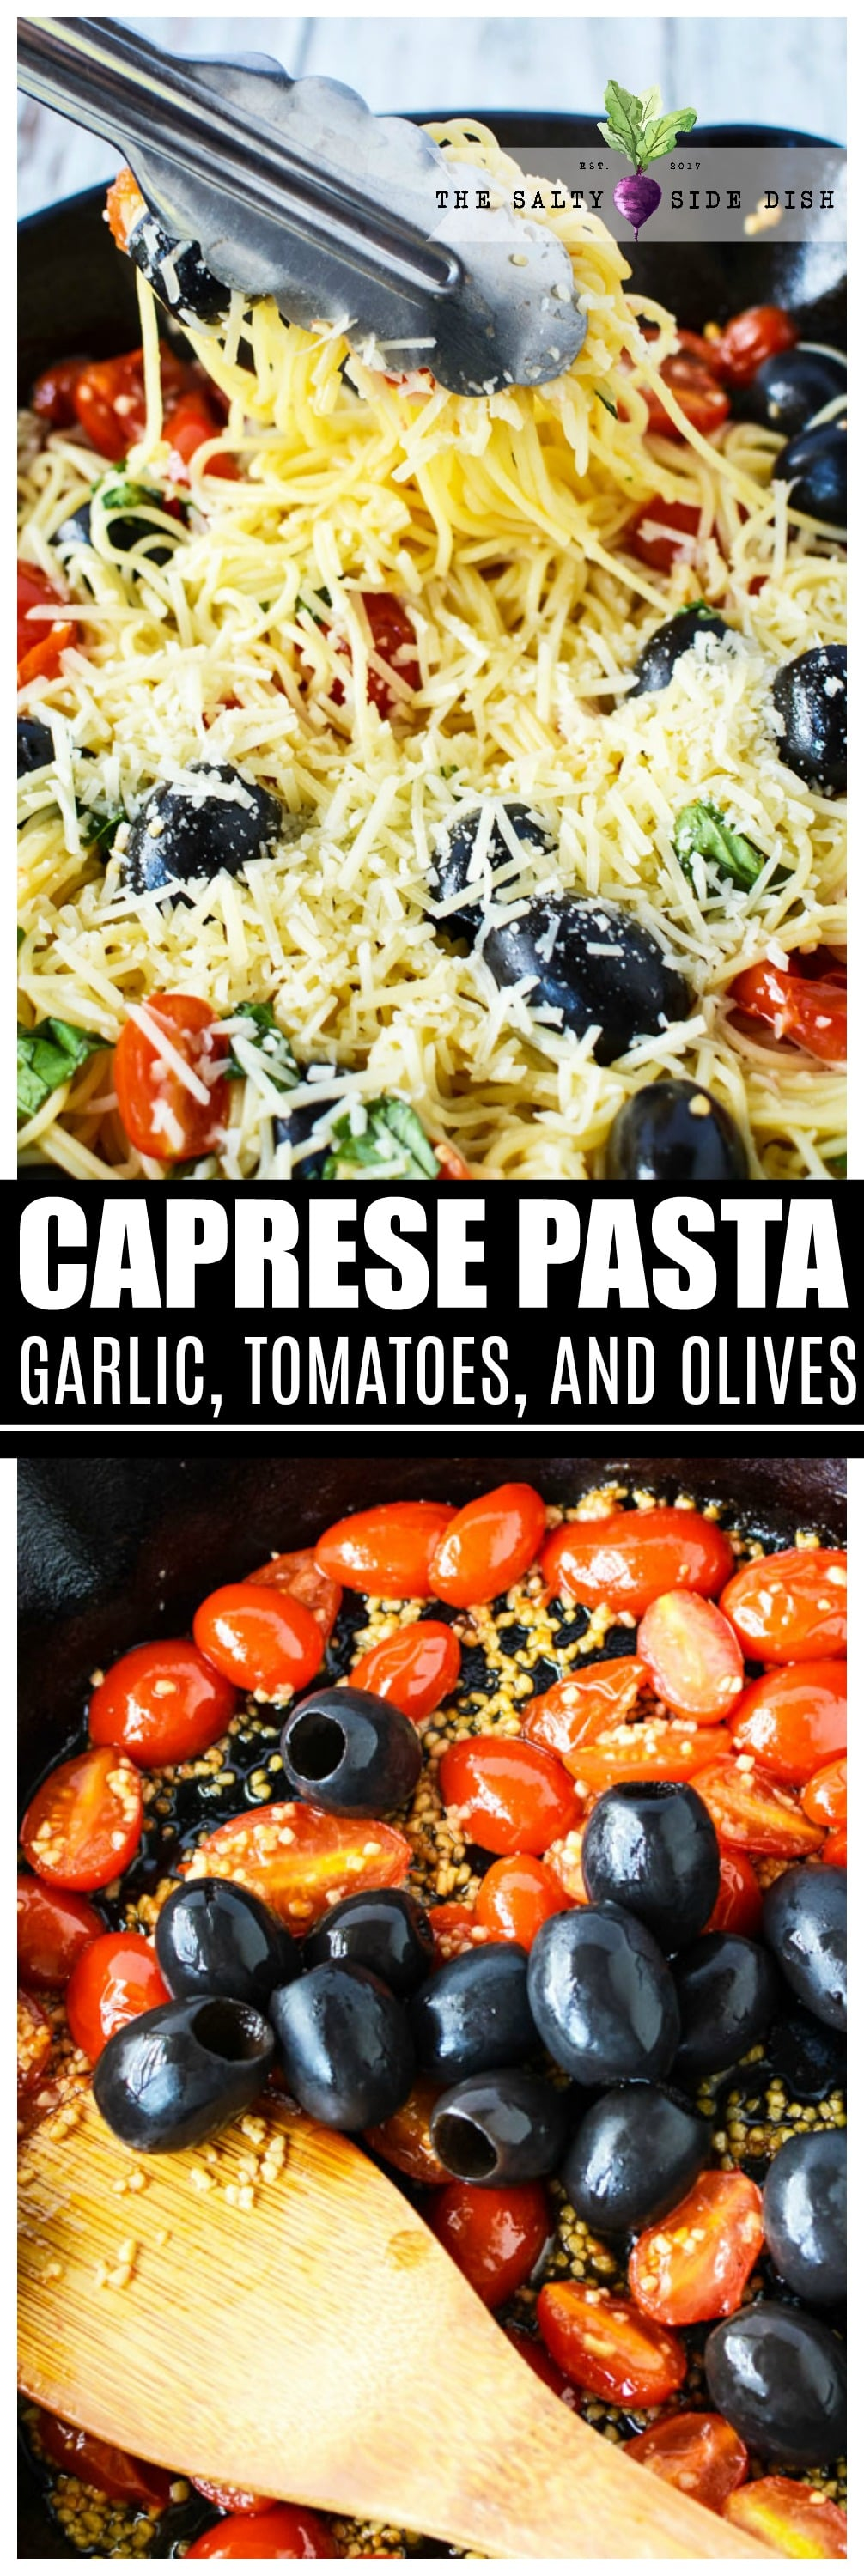 Easy Pasta Caprese | Bold flavors of tomato, basil and garlic make up this Caprese Pasta #sidedish #appetizer #olives #caprese #italian